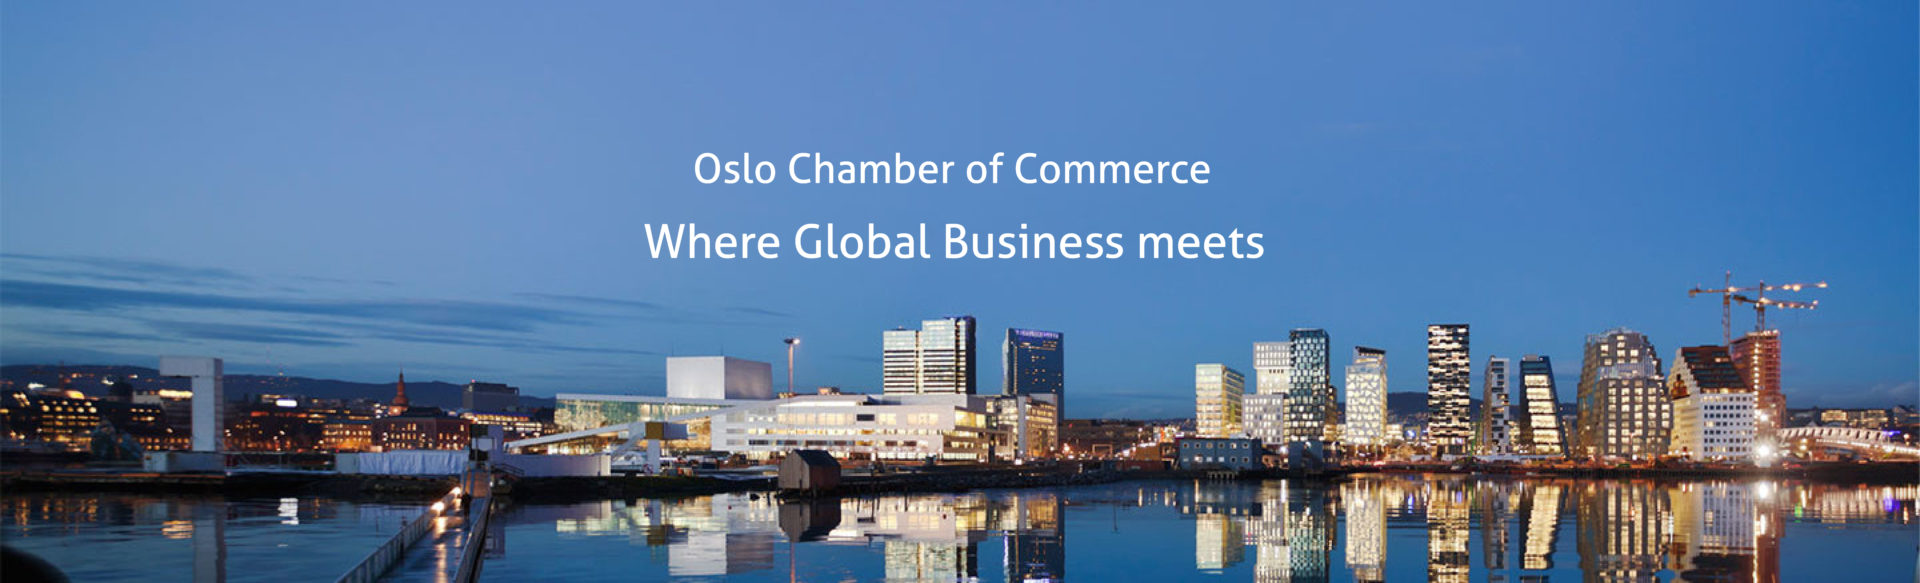 where-global-business-meets